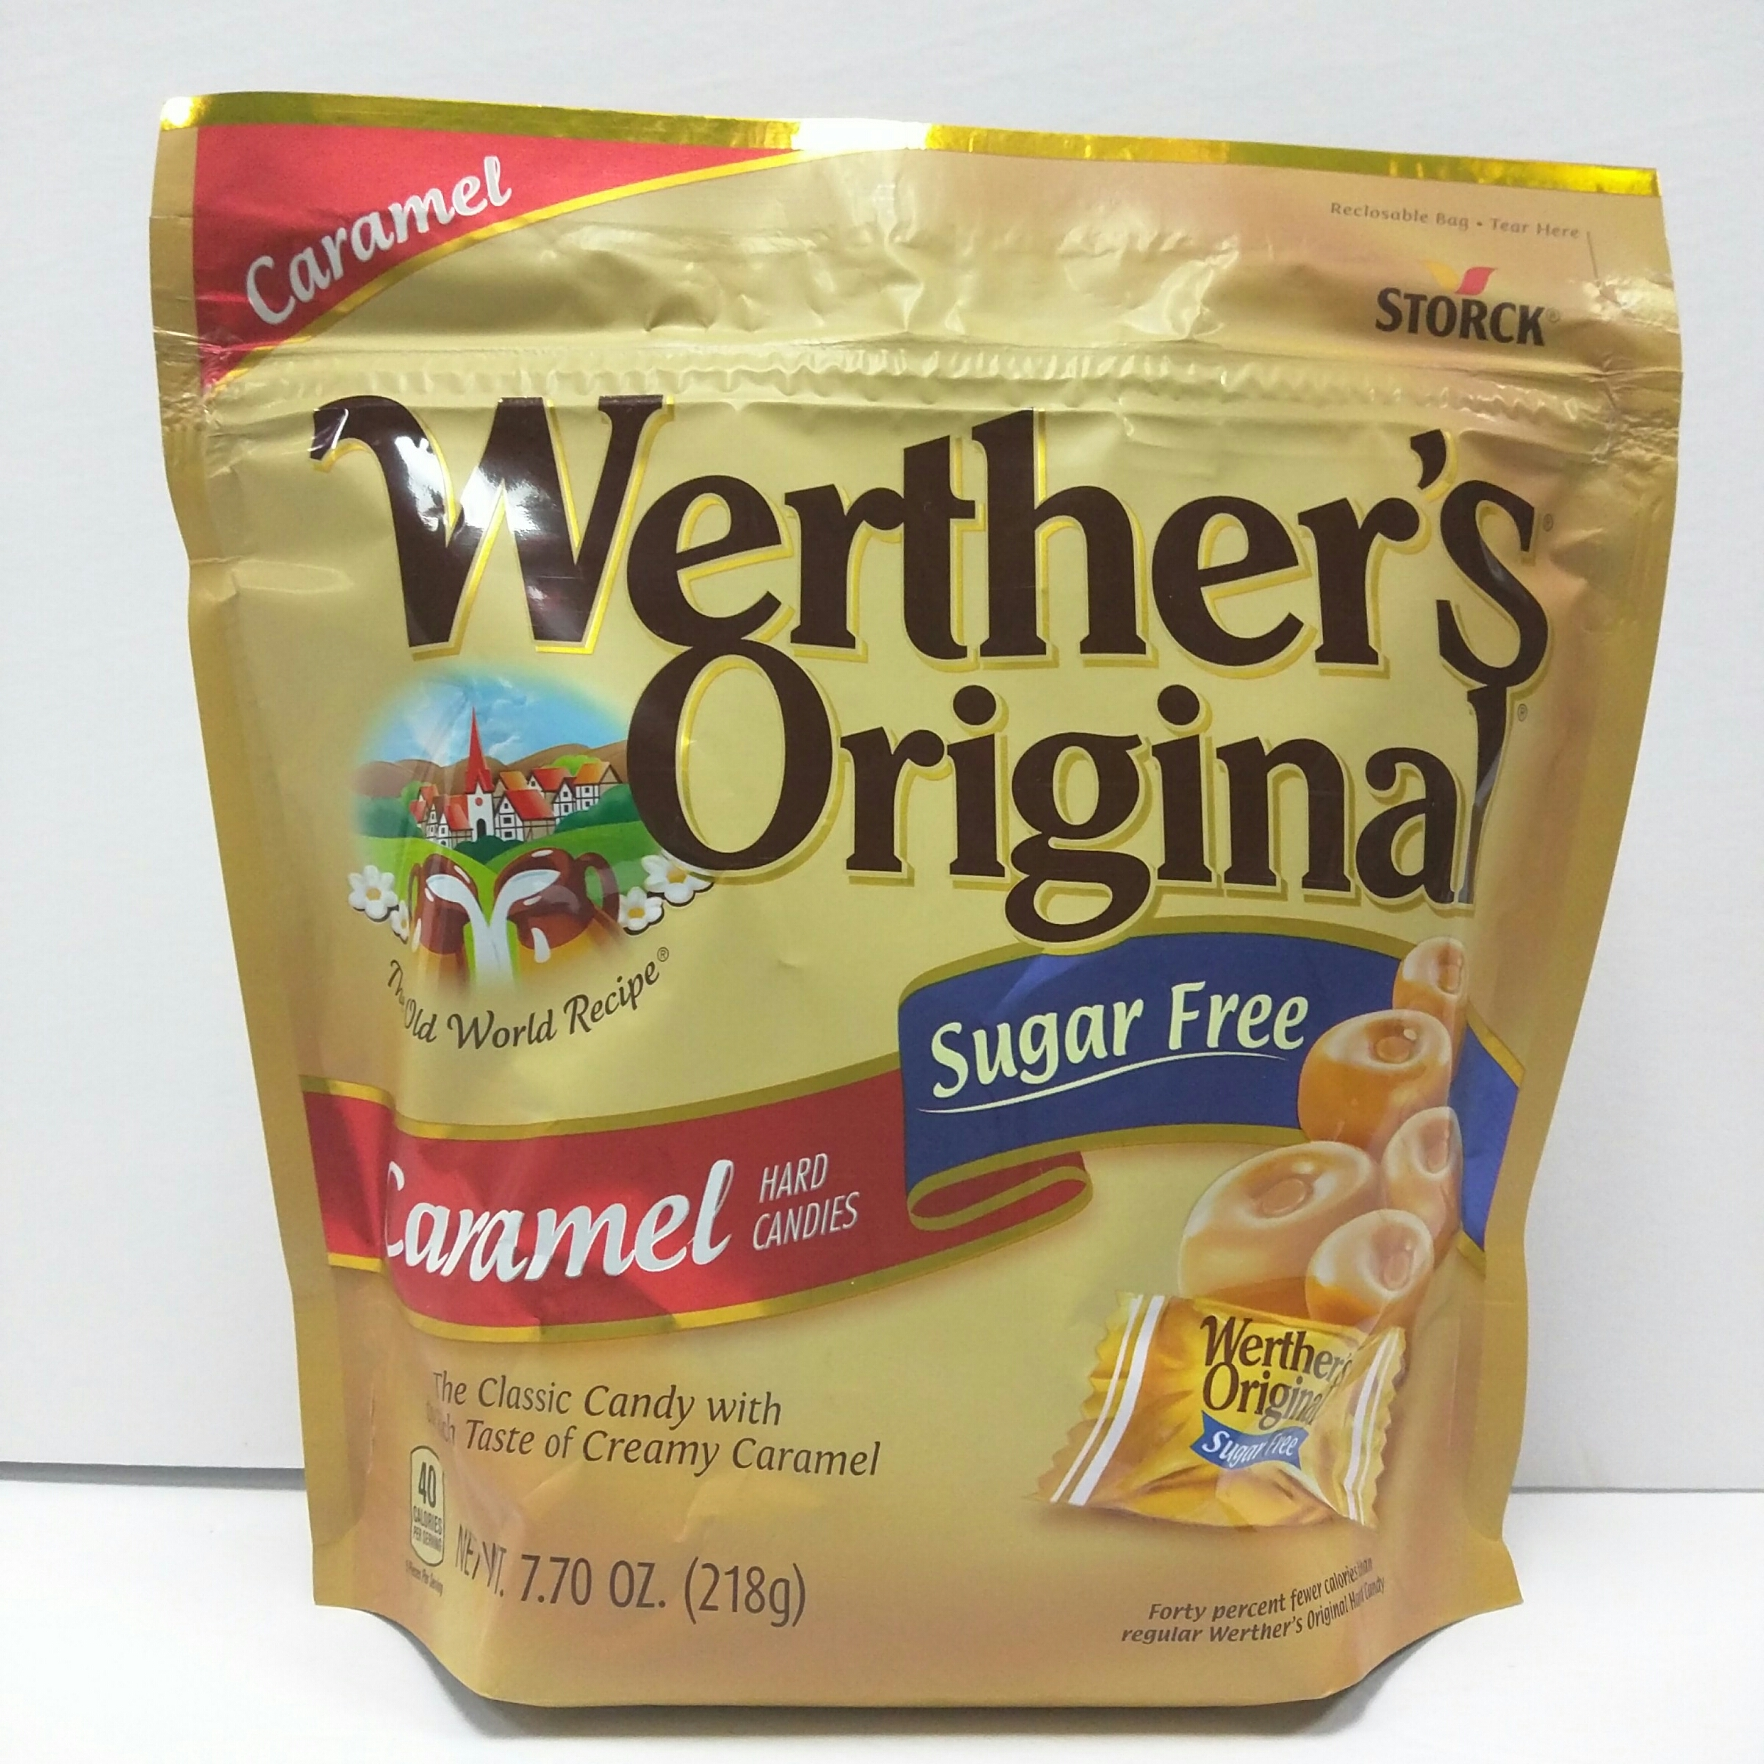 Werther's Original Sugar Free Caramels, 7.7oz by Generic